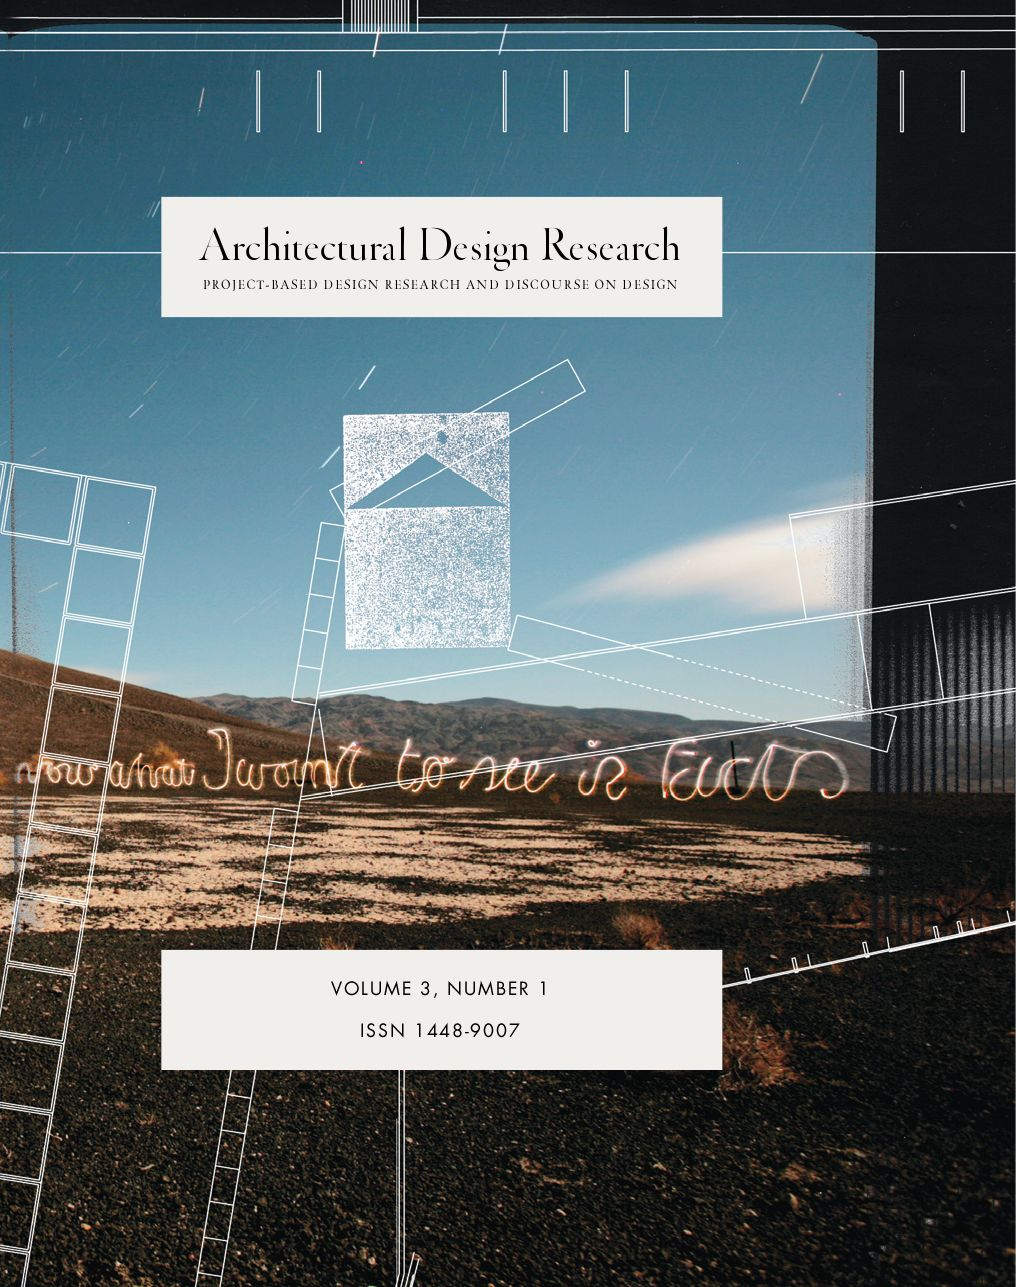 architectural design research vol 3 no 1 by brent